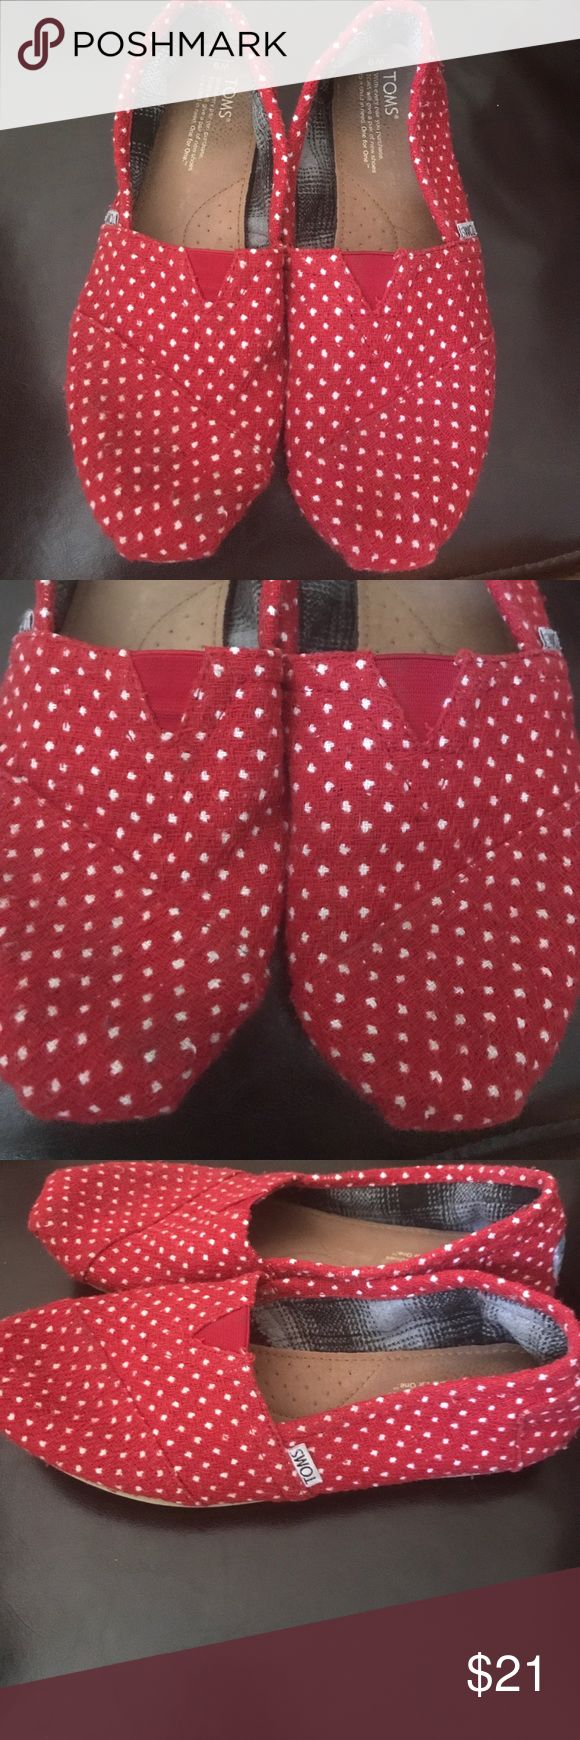 TOMS Red and White Polka Dot Shoes, 9 Very good condition, freshly washed Toms Shoes Espadrilles